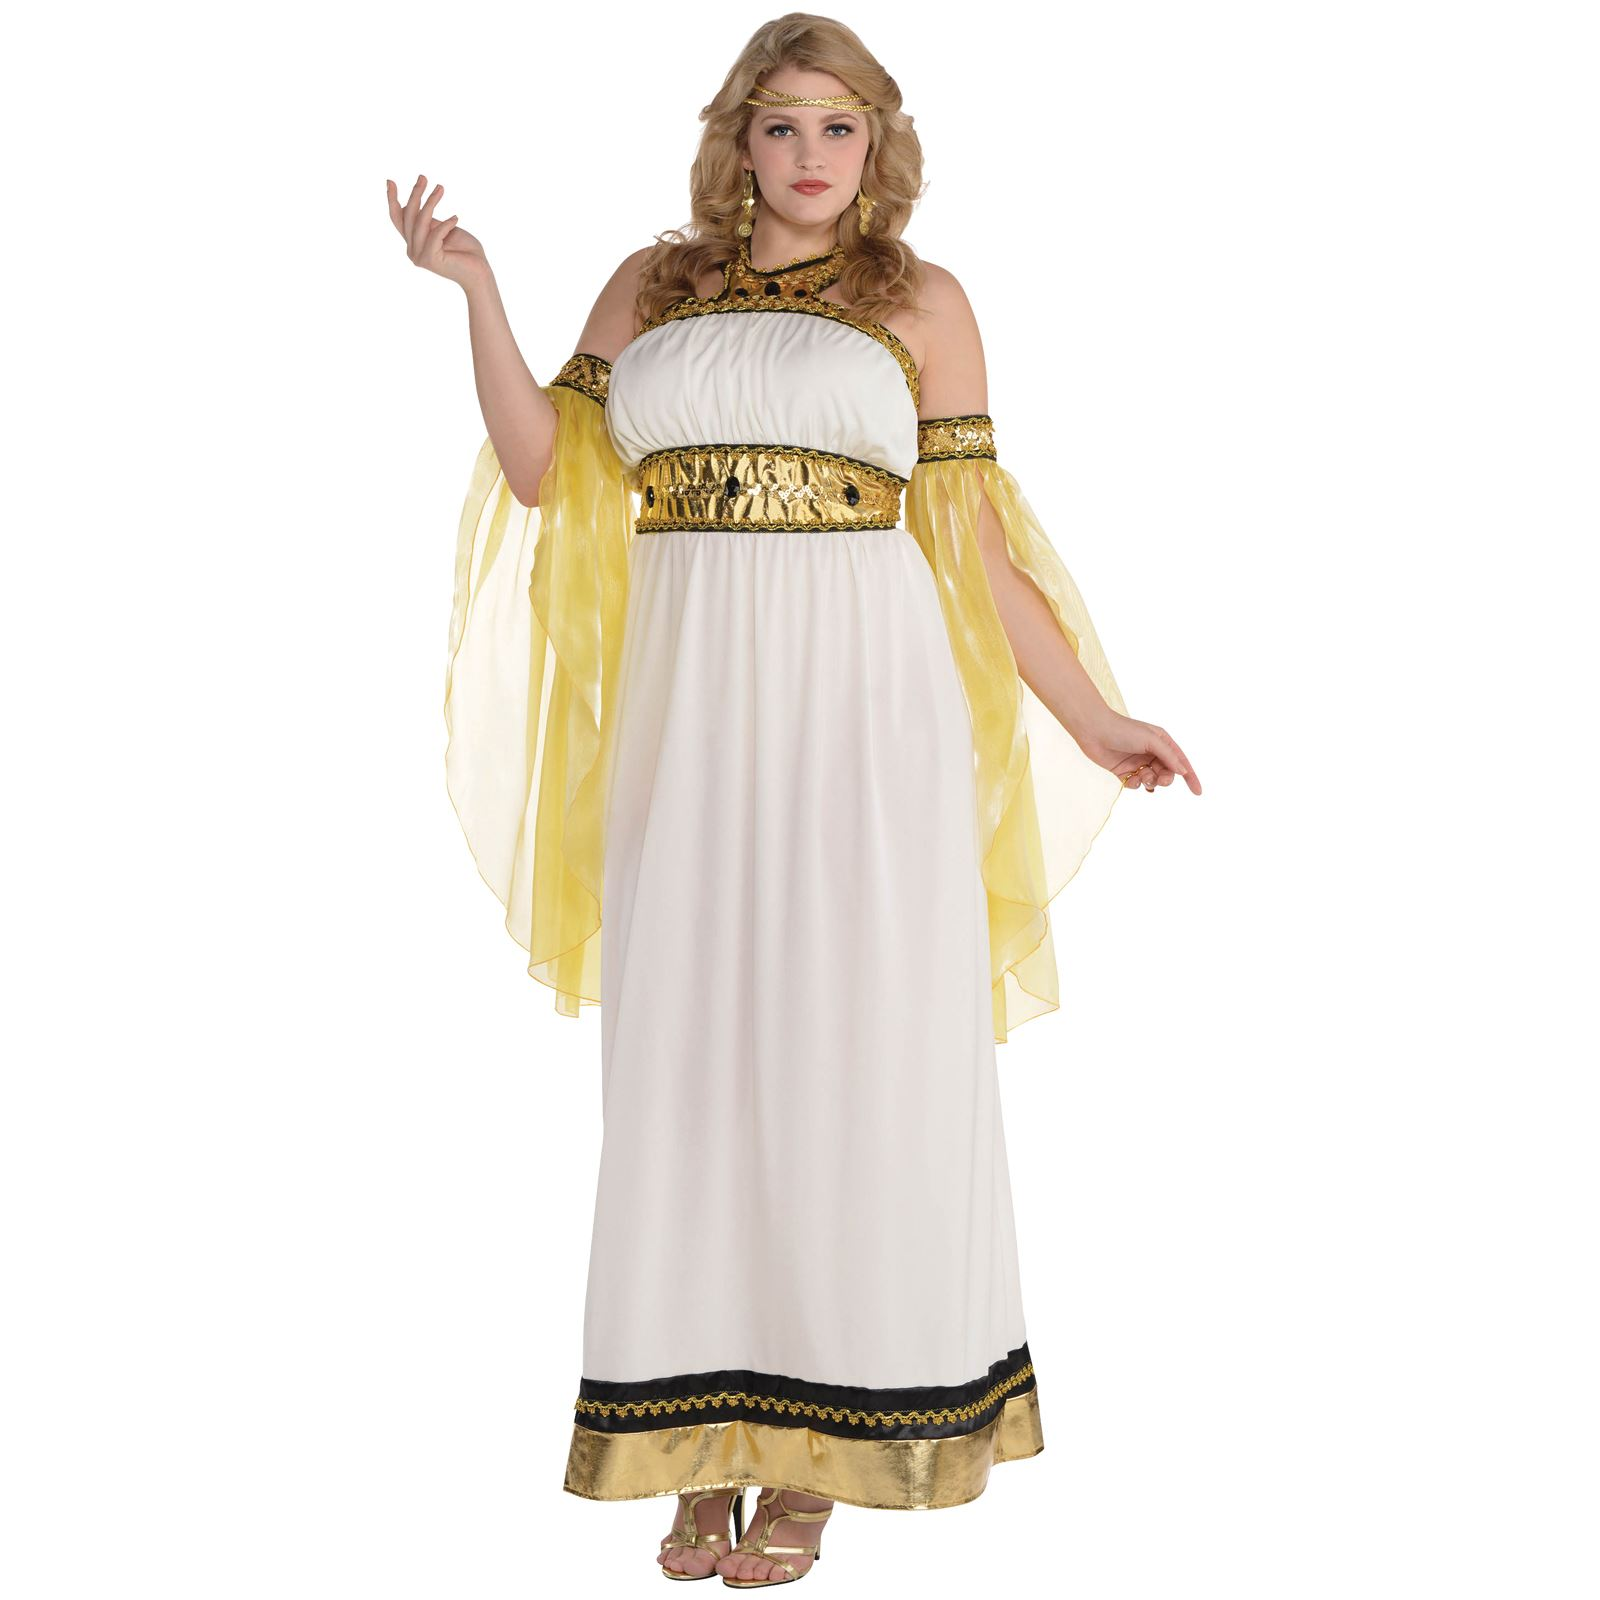 goddess fancy dress costume roman greek toga cleopatra ladies outfit